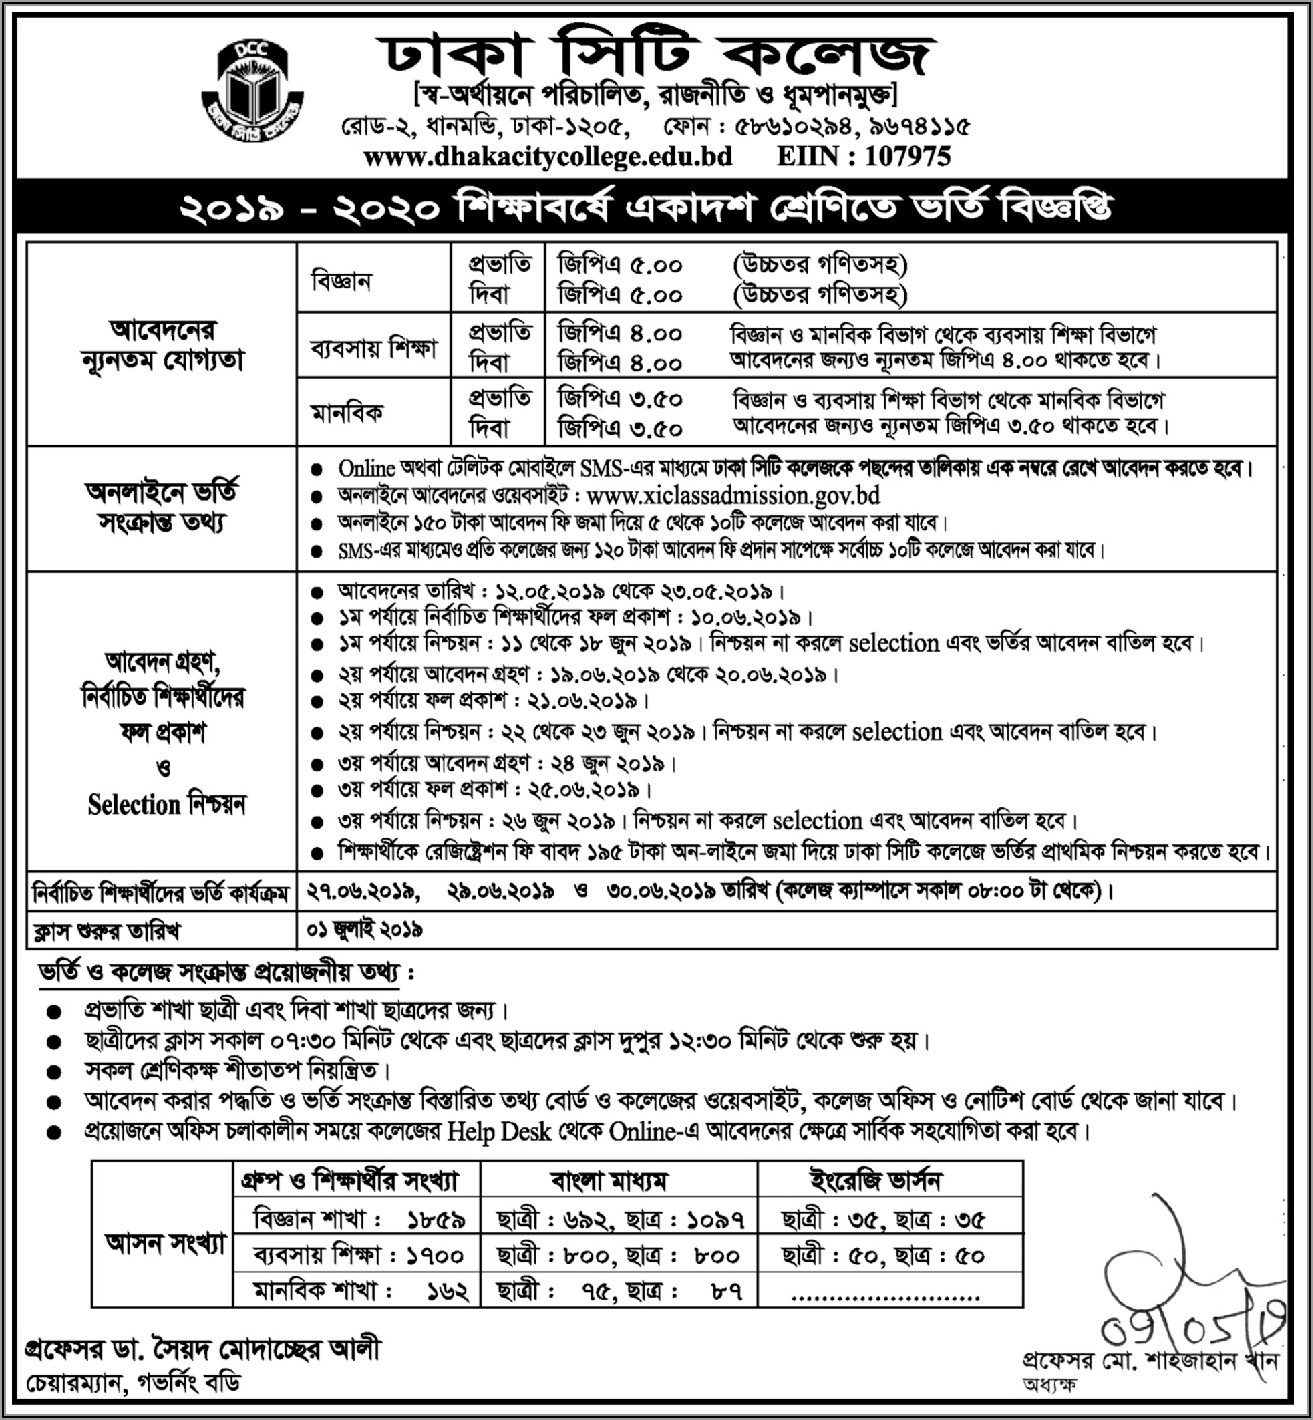 Dhaka City College Admission Form